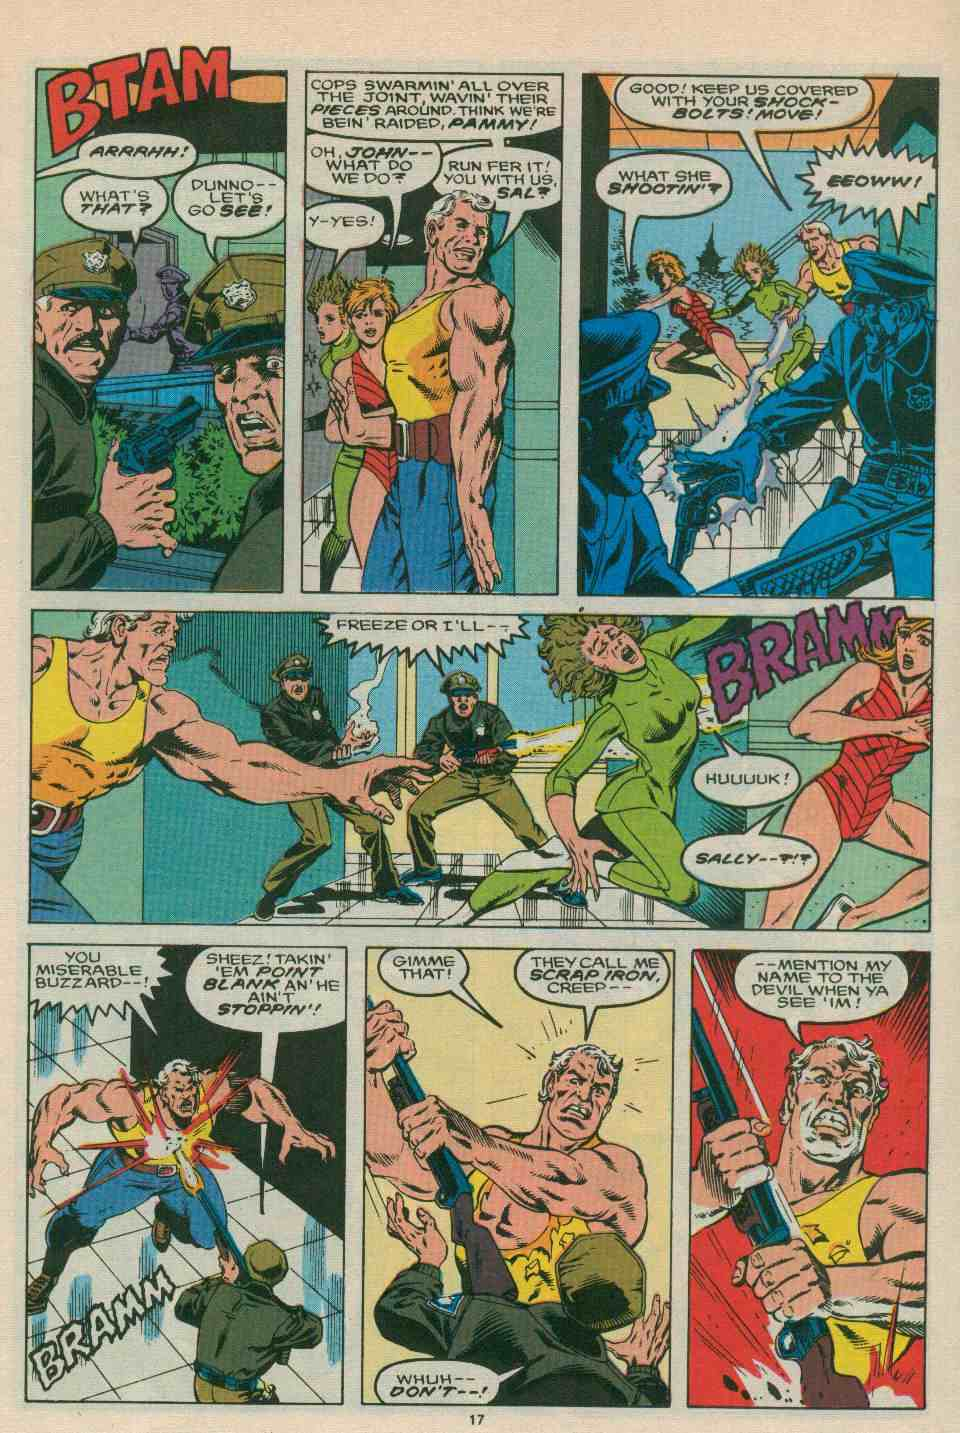 Read online DP7 comic -  Issue #21 - 18